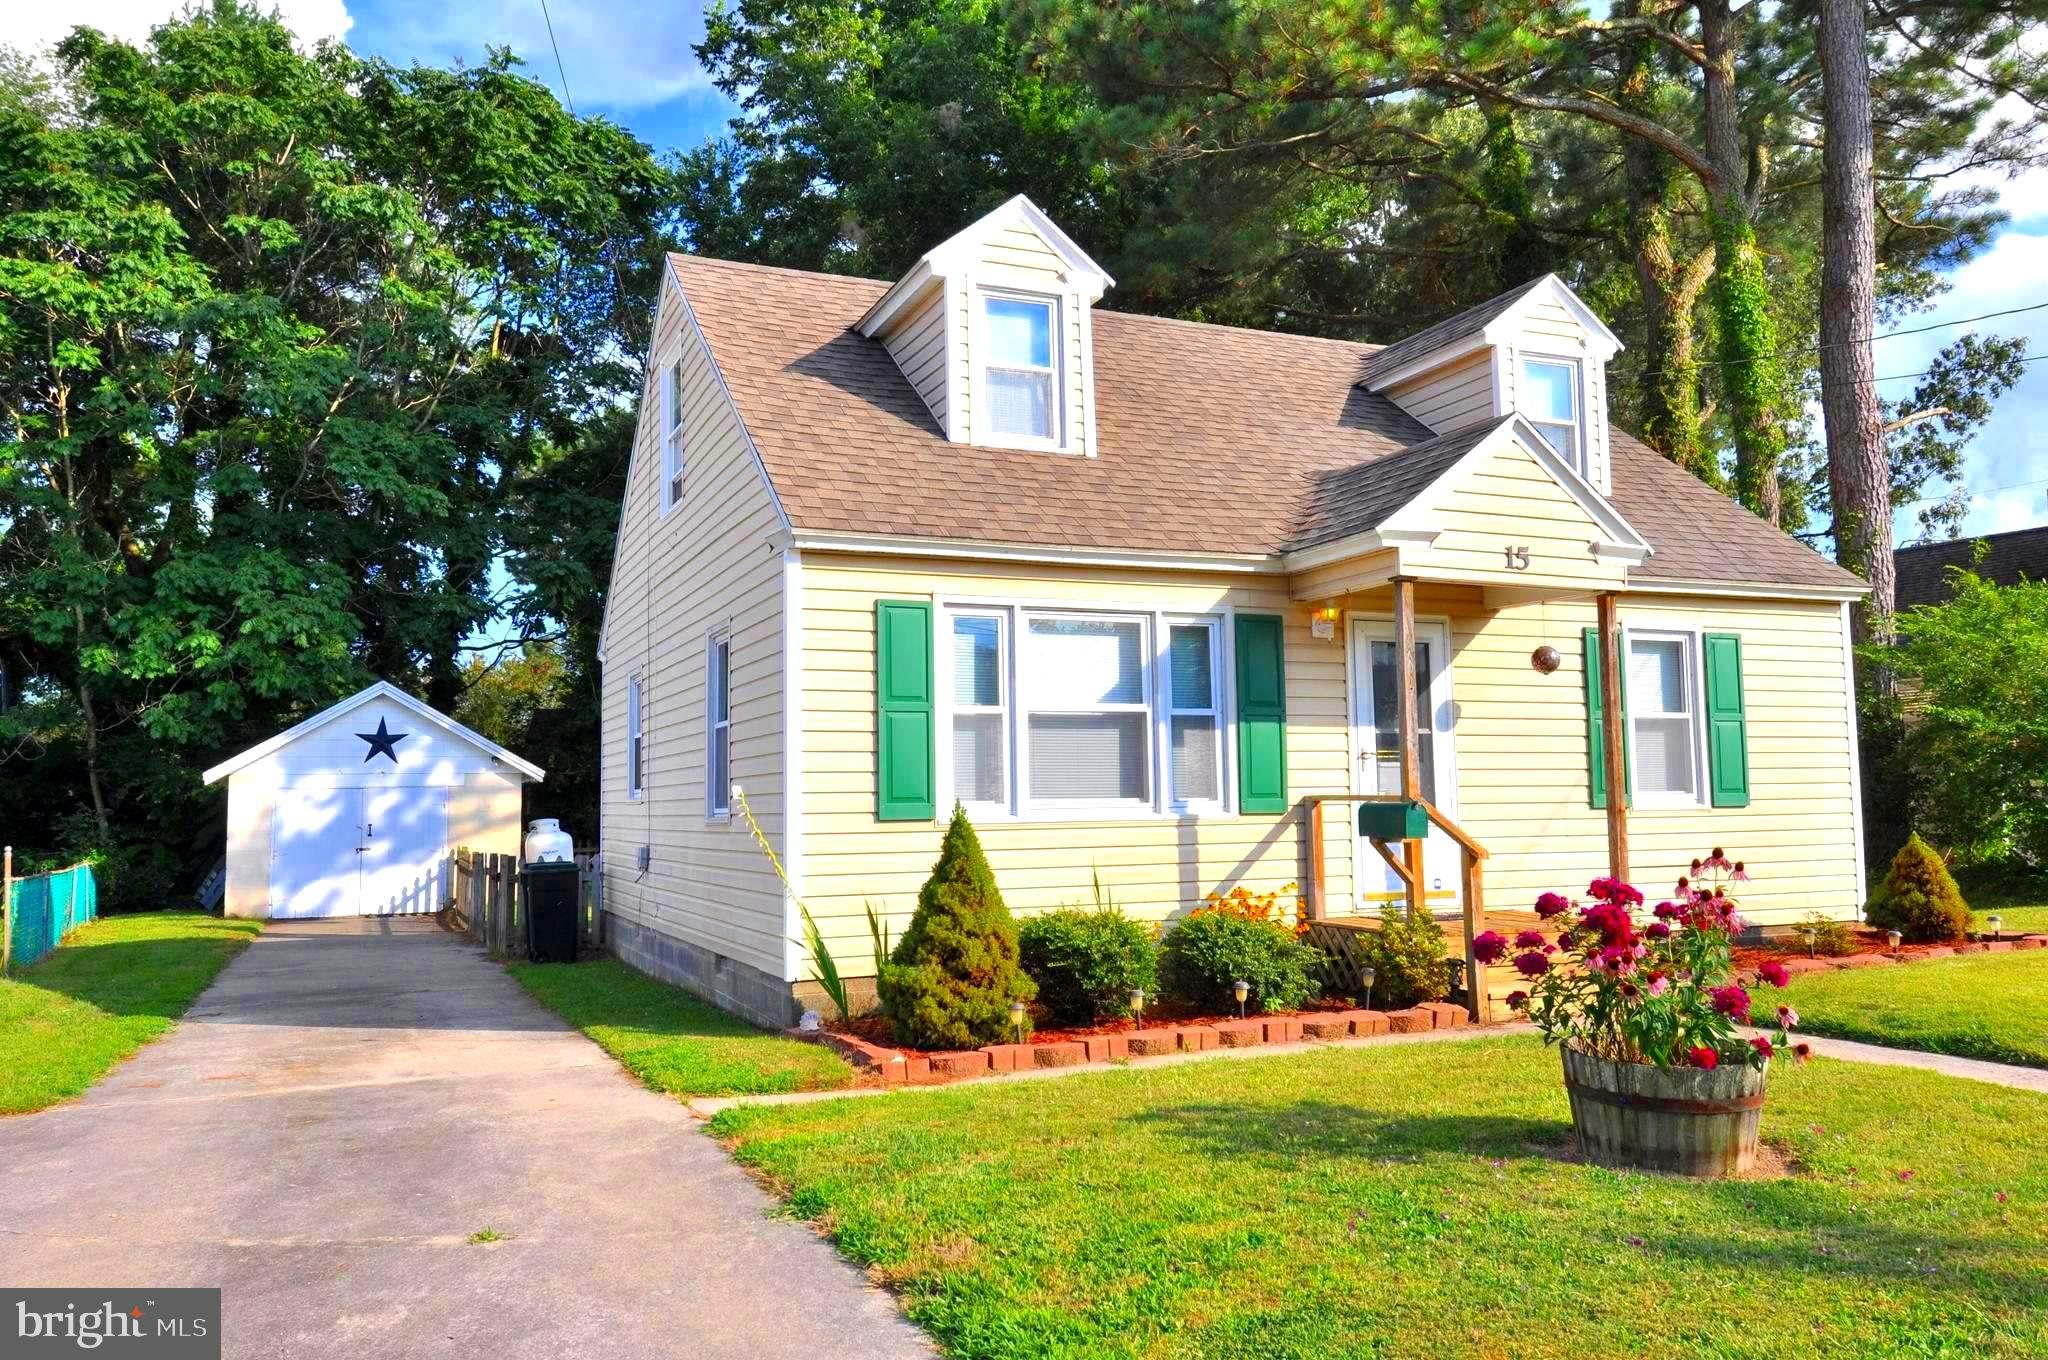 Look at this affordable 3 bedroom Cape Cod home located in a quiet neighborhood. Freshly painted thr